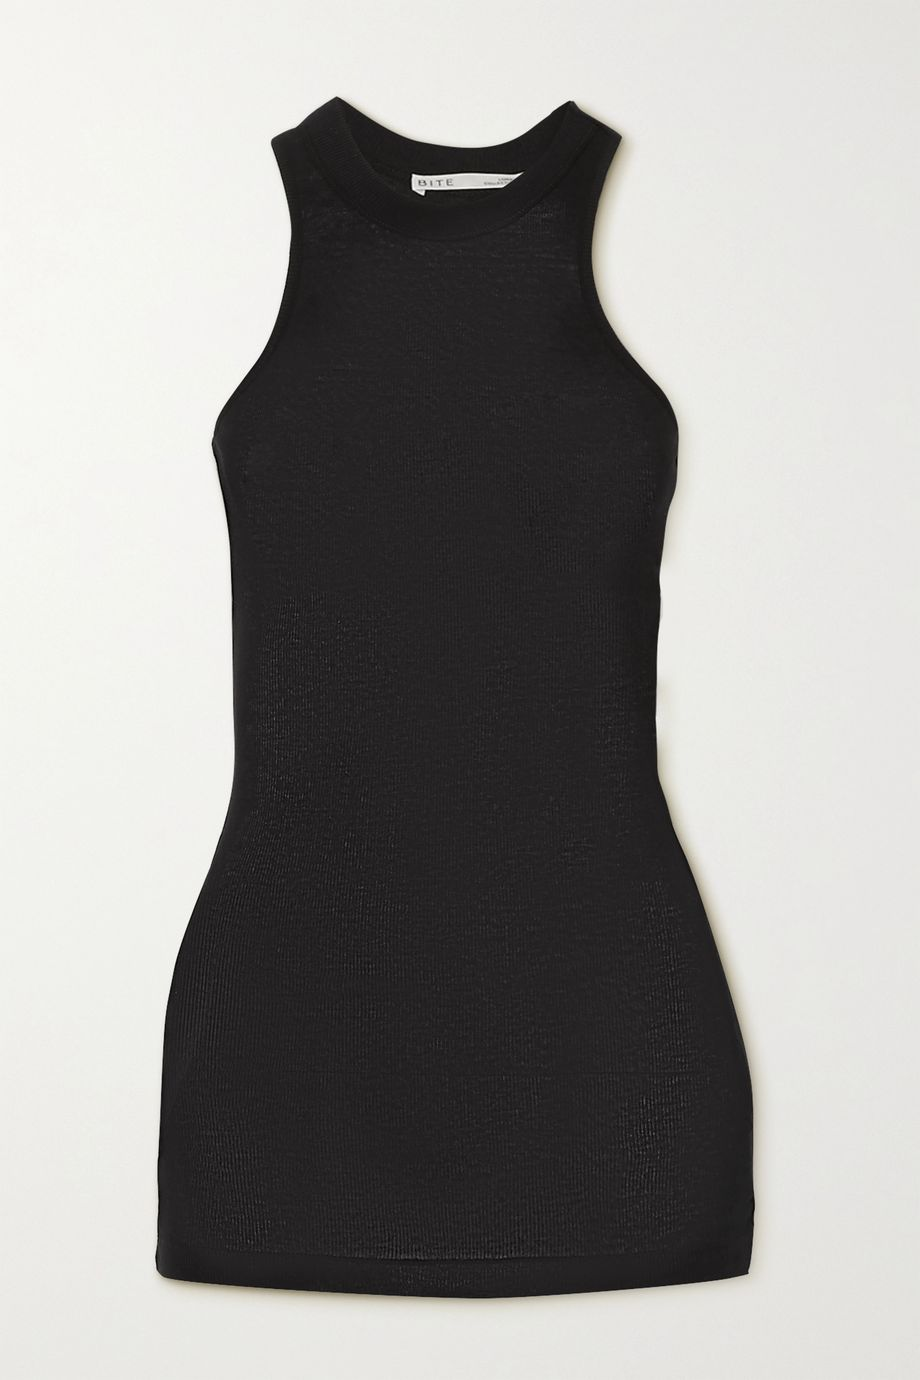 BITE Studios + NET SUSTAIN ribbed organic cotton tank